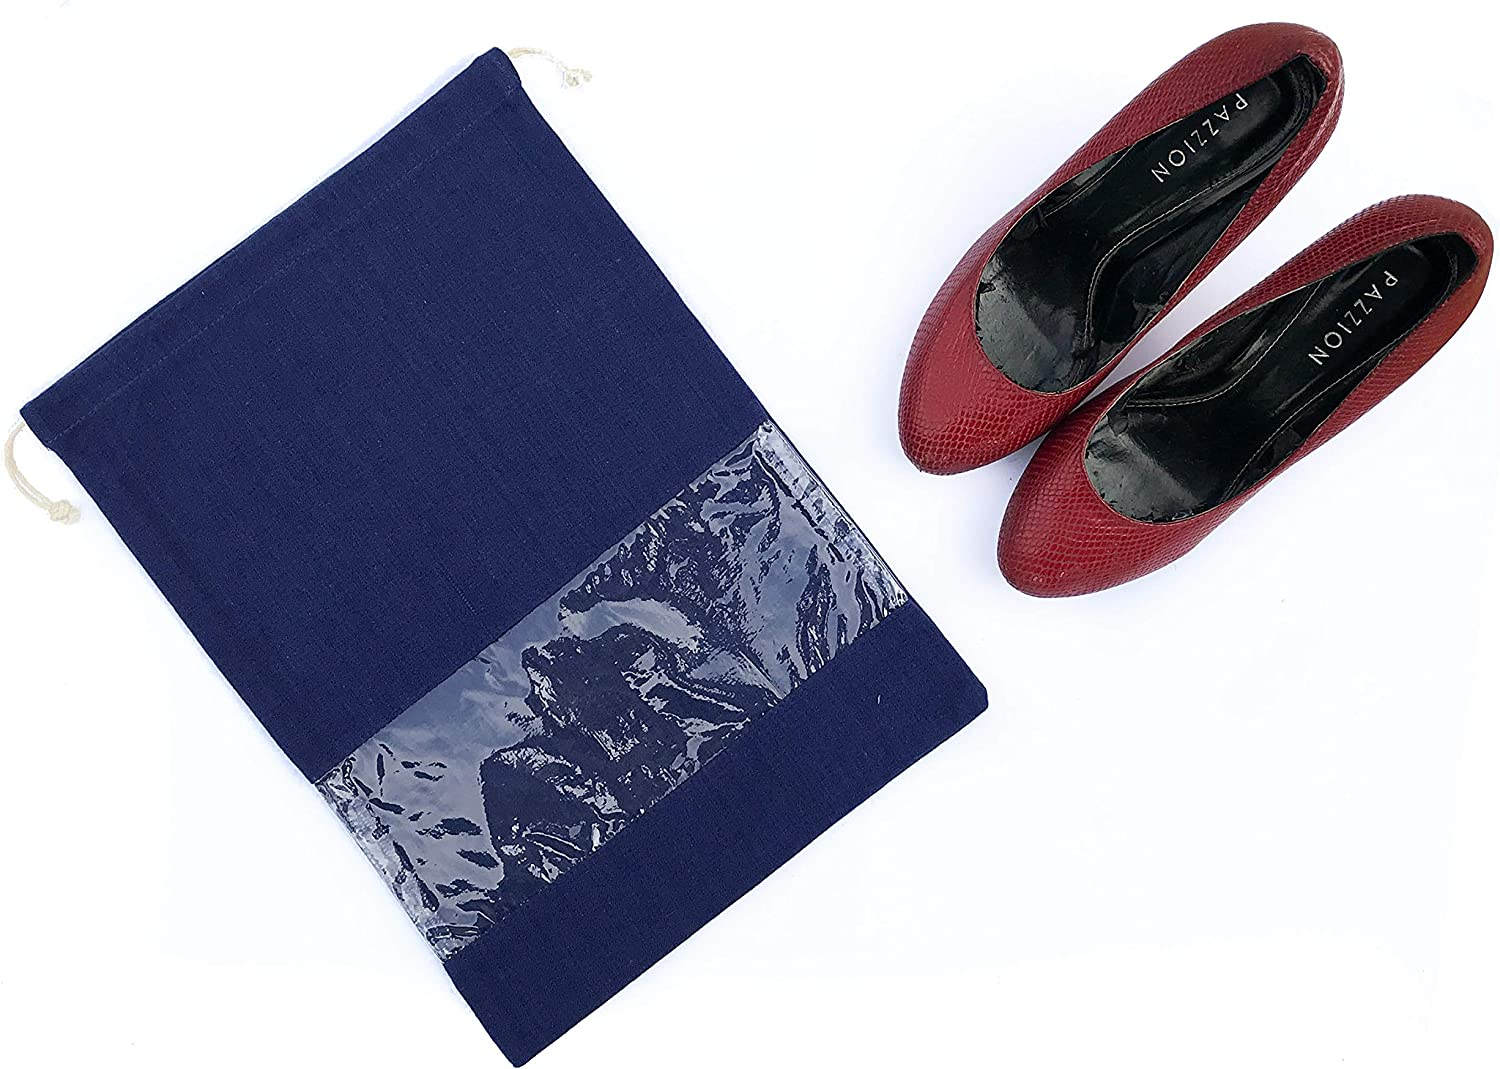 Travel Accessories Shoe Protective Bags Breathable Cotton Set of 2 Dust Covers By Craftbot